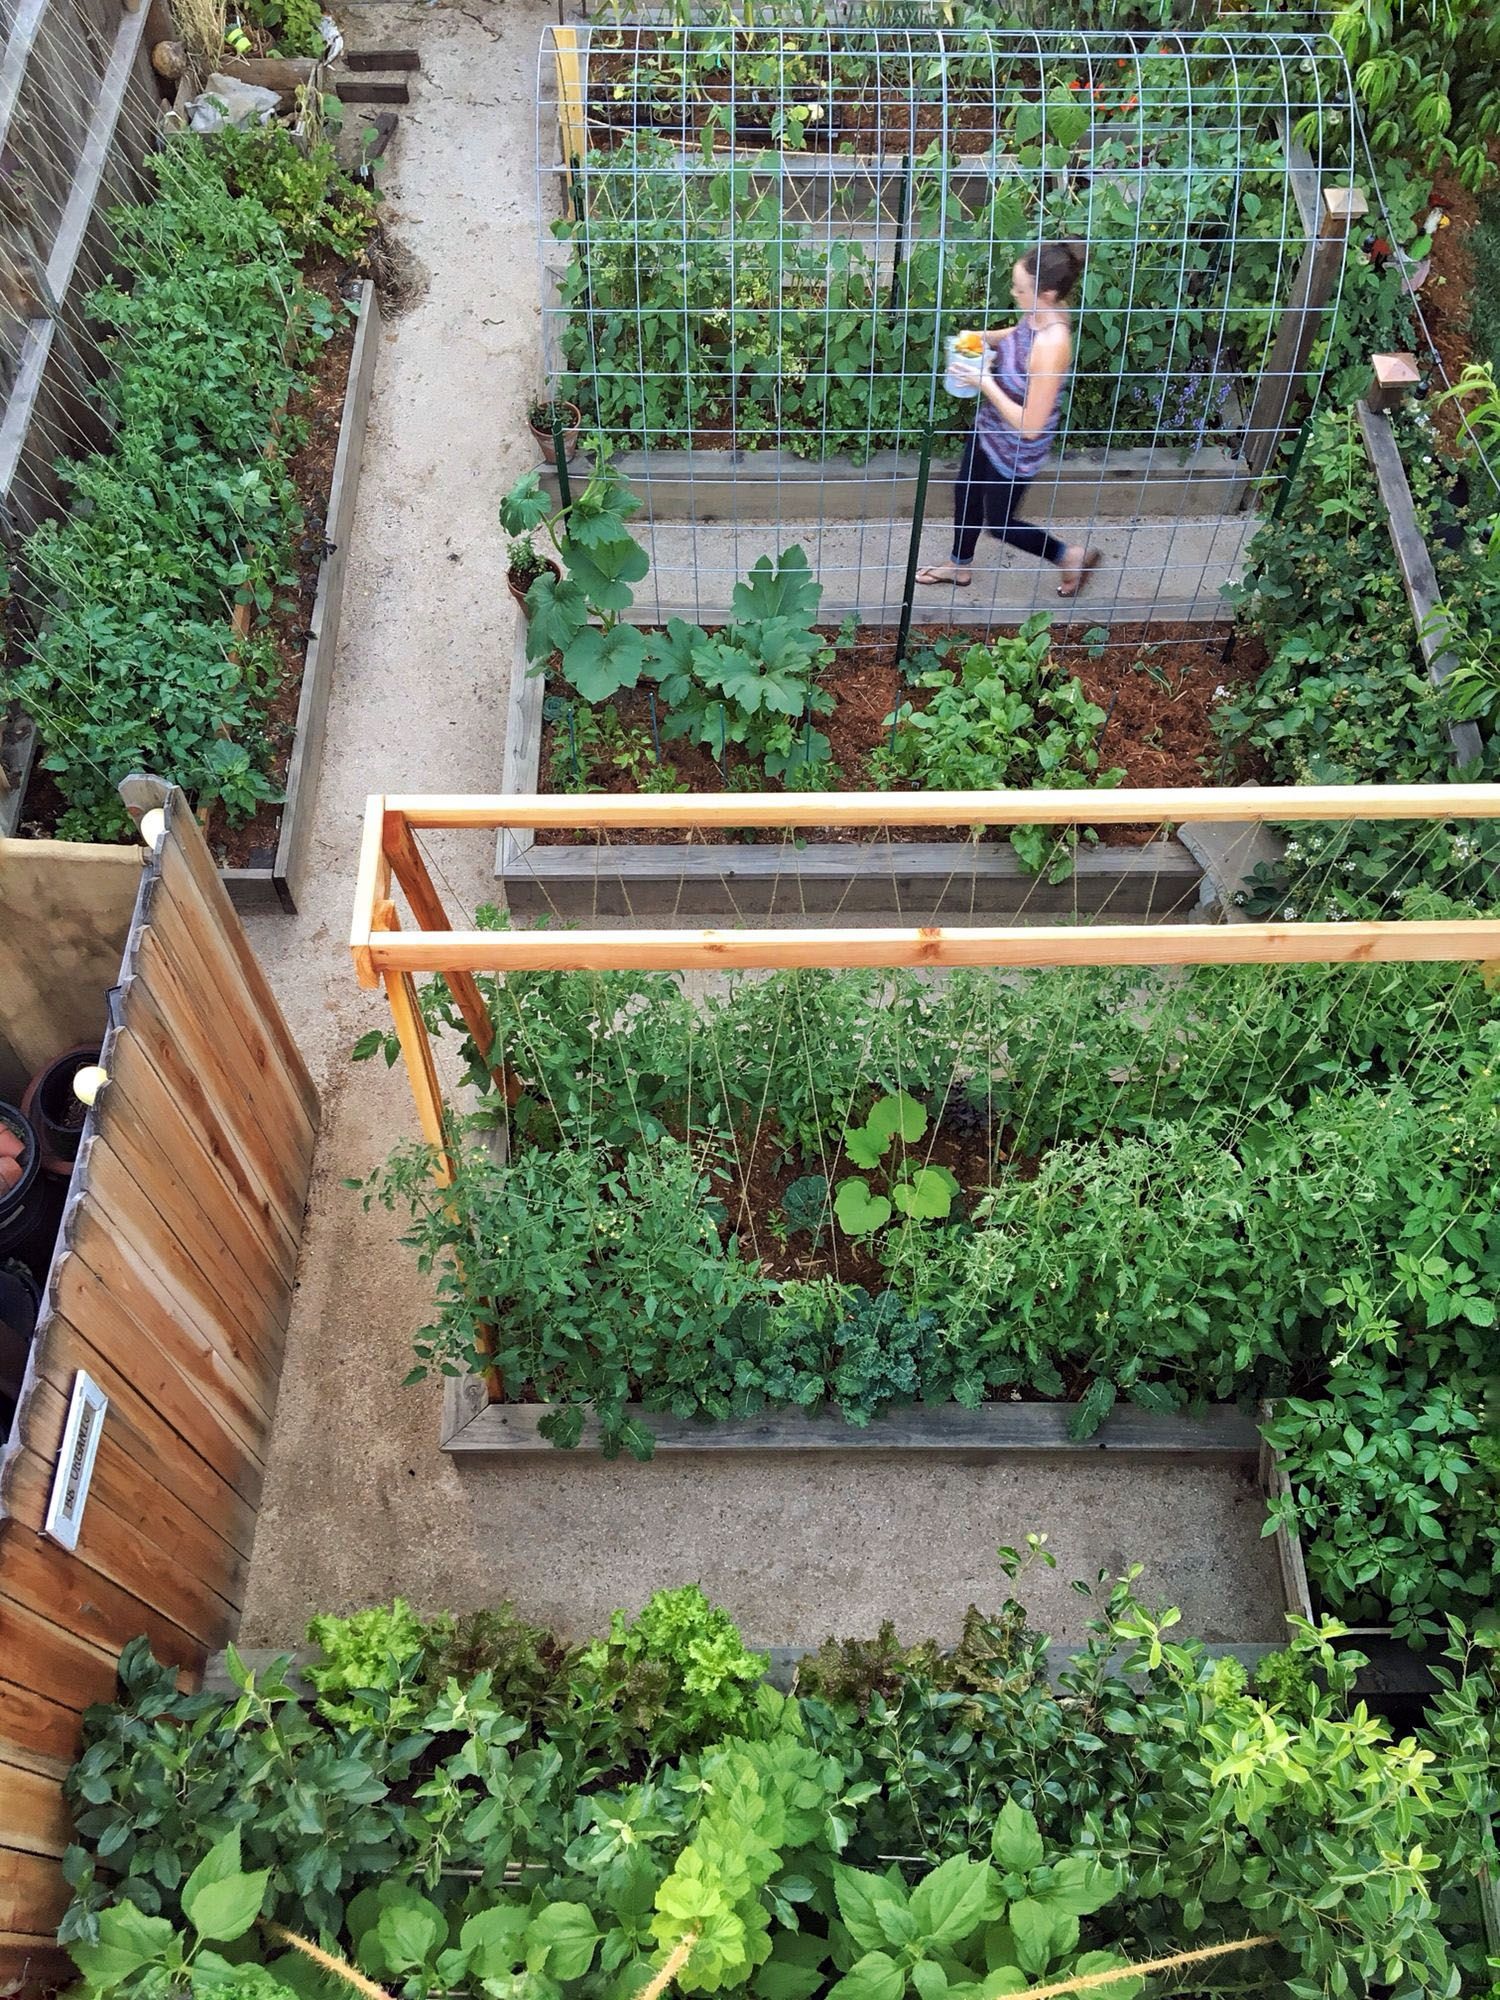 10 Lifted Garden Landscape Design Tips Vegetable garden